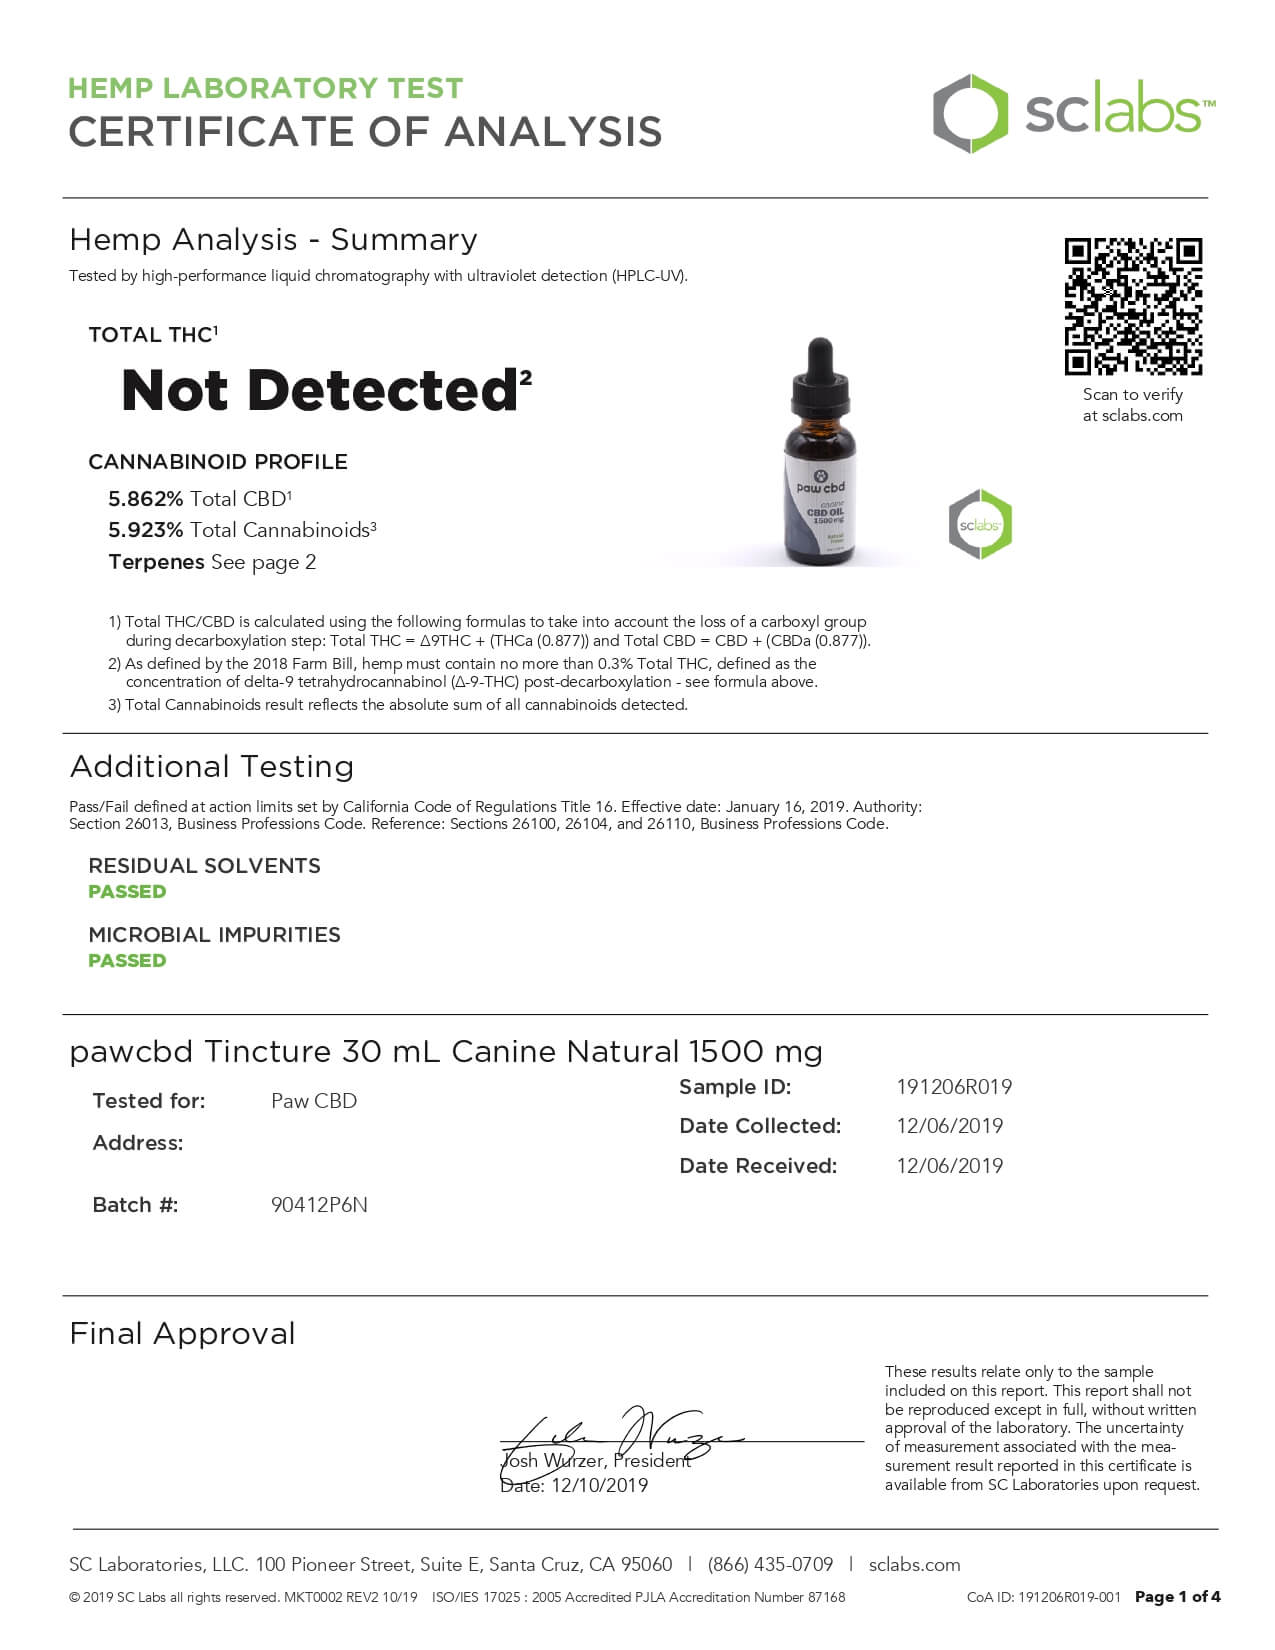 cbdMD CBD Pet Tincture Natural Flavored for Canines 1500mg Lab Report